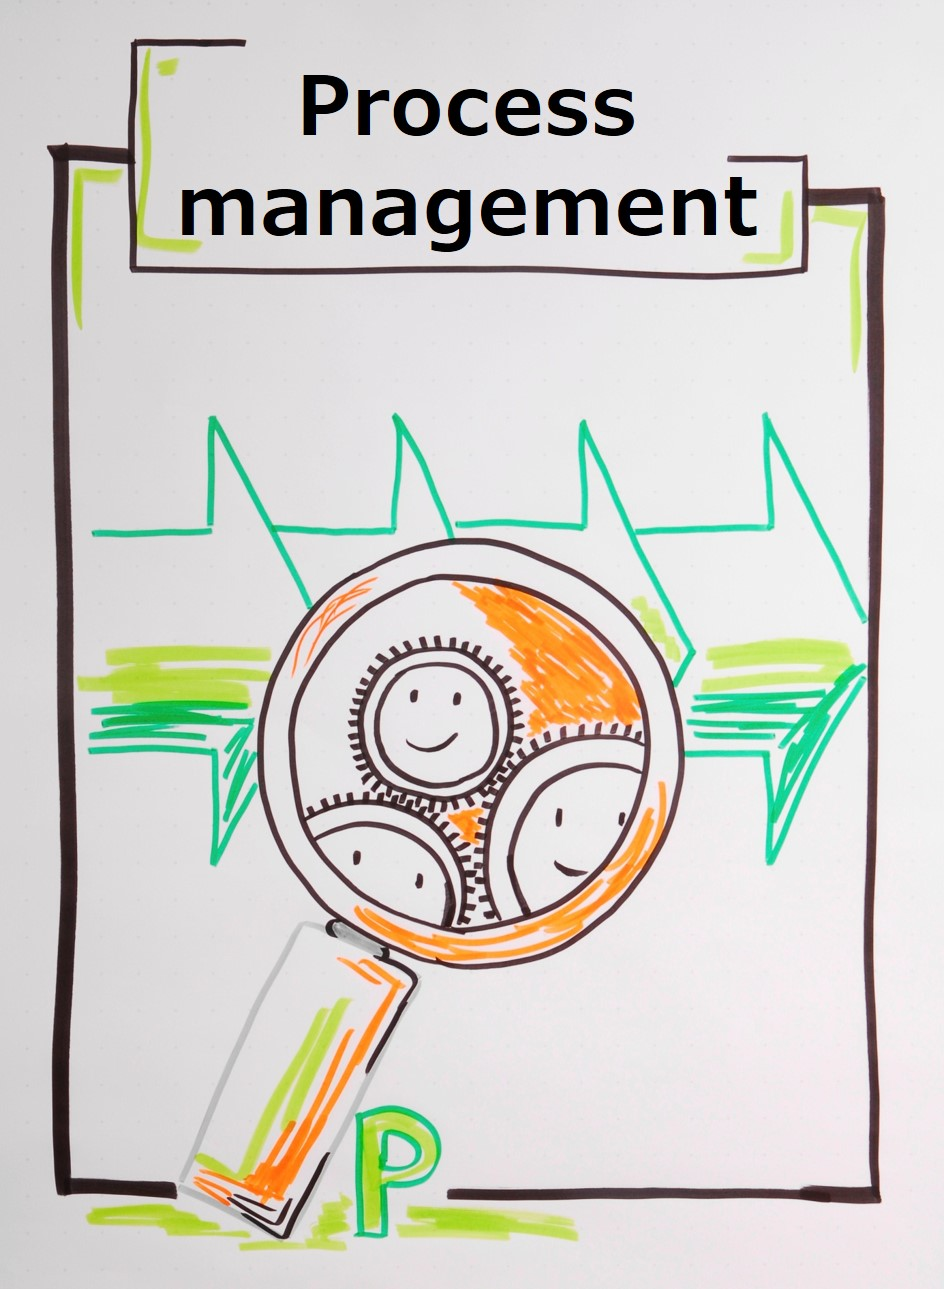 Good process management helps to minimize resistance and increase motivation